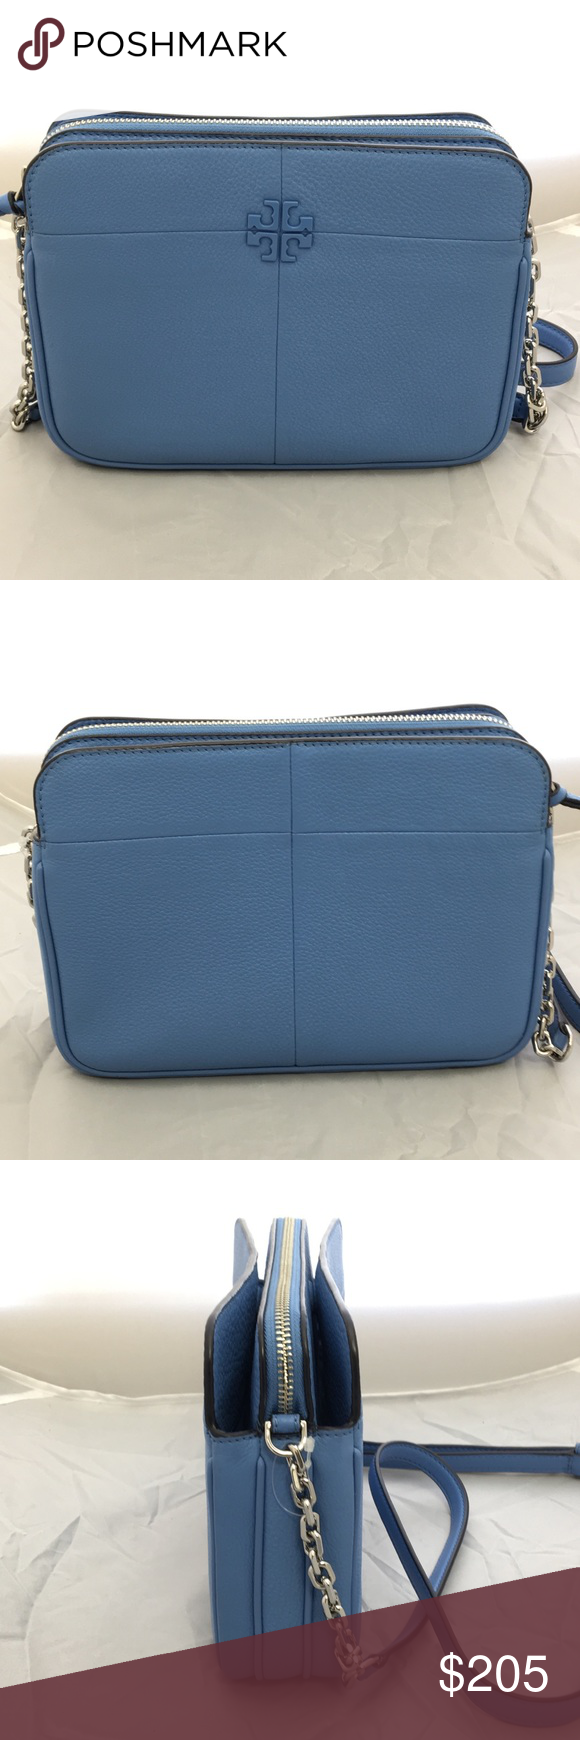 "18d112d174a NWOT Tory Burch Ivy Crossbody Pebbled leather in ""Montego Blue"". Zip close."